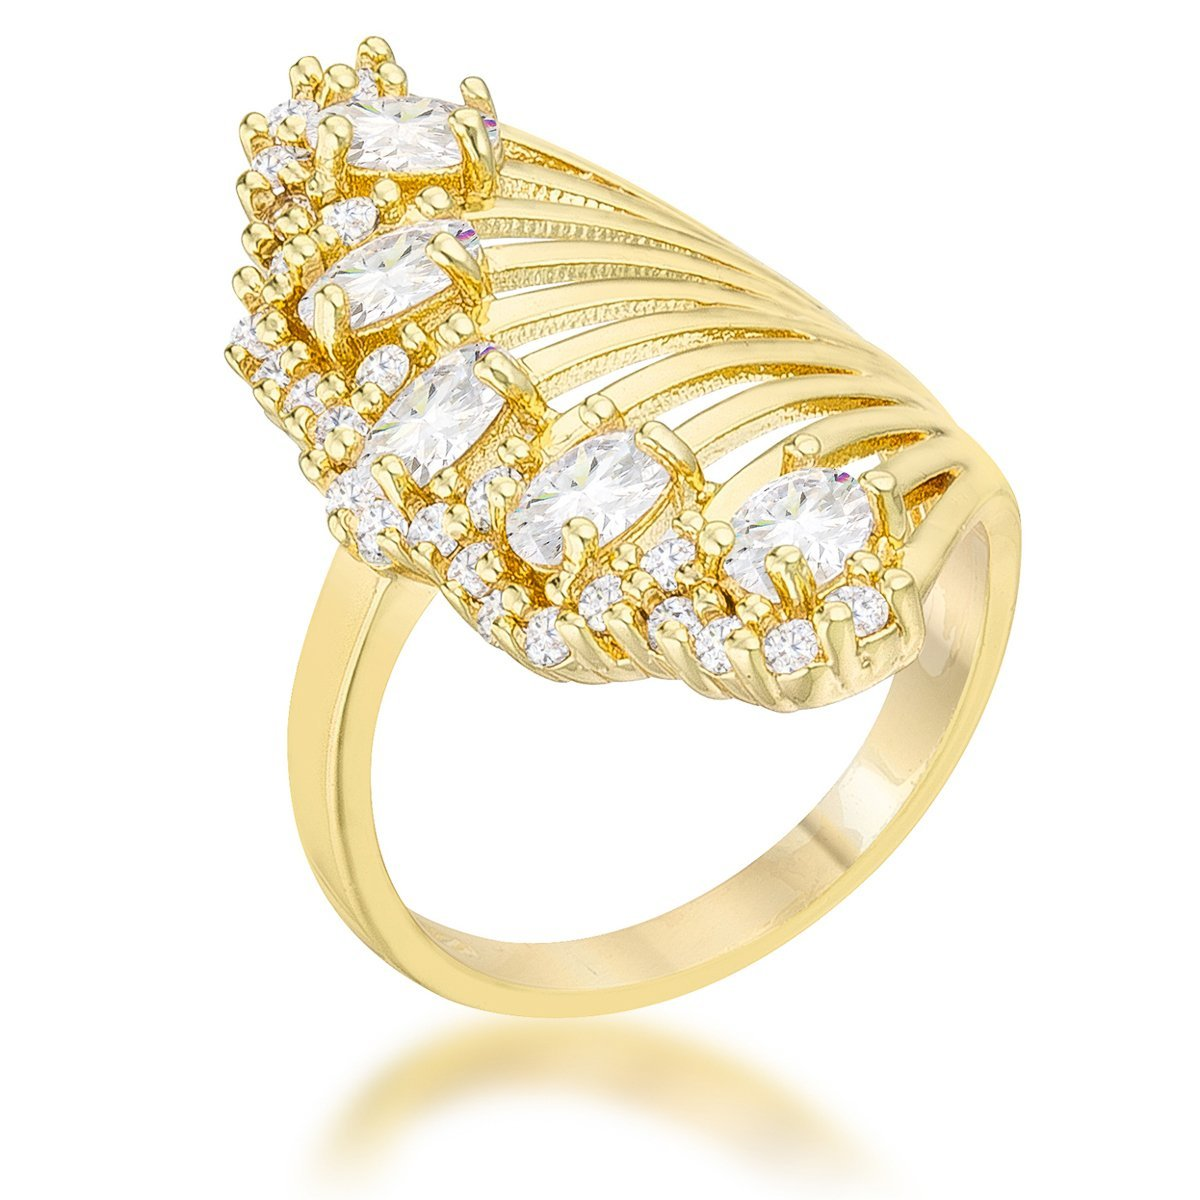 WildKlass 2.15ct CZ 14k Gold Plated Contemporary Cocktail Ring